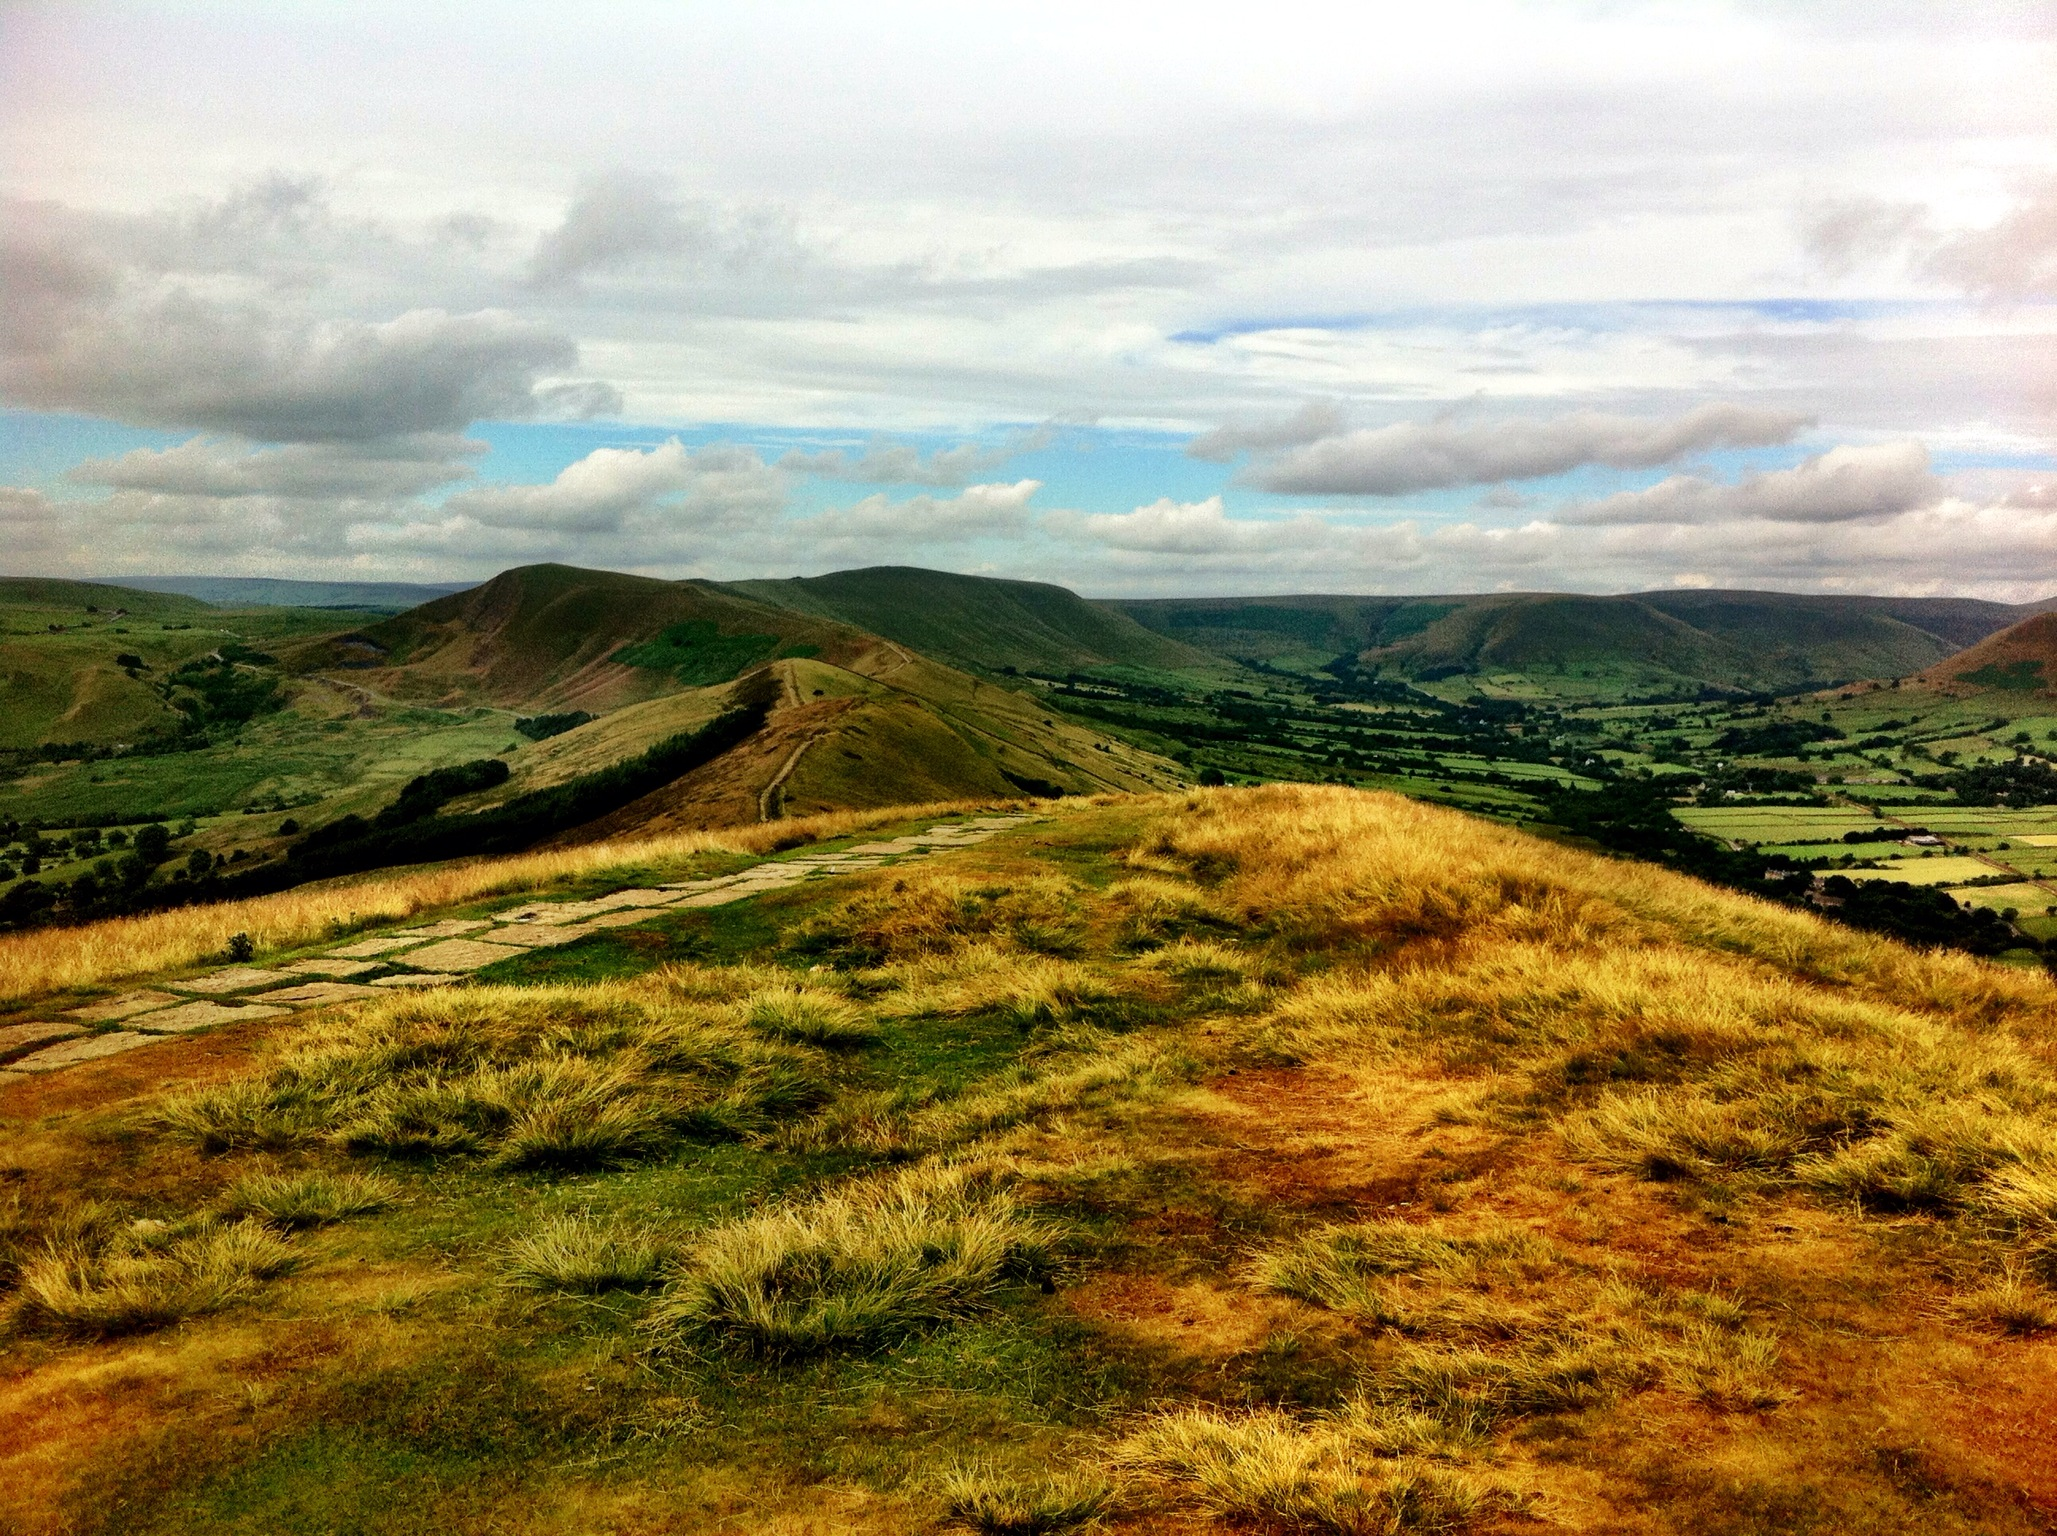 Castleton to Edale Ridge Walk via Jacob's Ladder and the Pennine Way